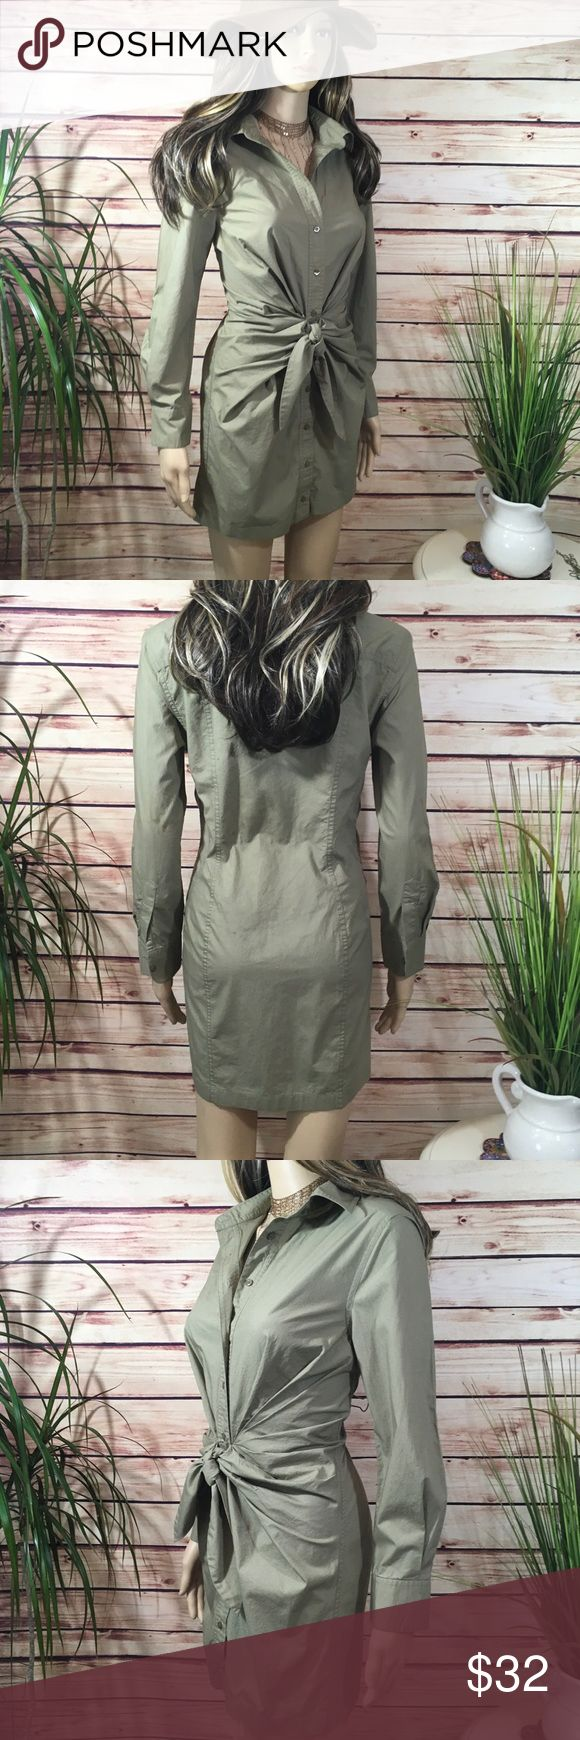 TIE FRONT SHIRT DRESS NWOT Adorable shirt dress, with full front buttons and cuffs and a stylish tie front, Sage green. Very versatile with a pair of boots, gladiator sandals, heels or flats! Great wardrobe piece. 🌸🎀 Banana Republic Dresses Long Sleeve